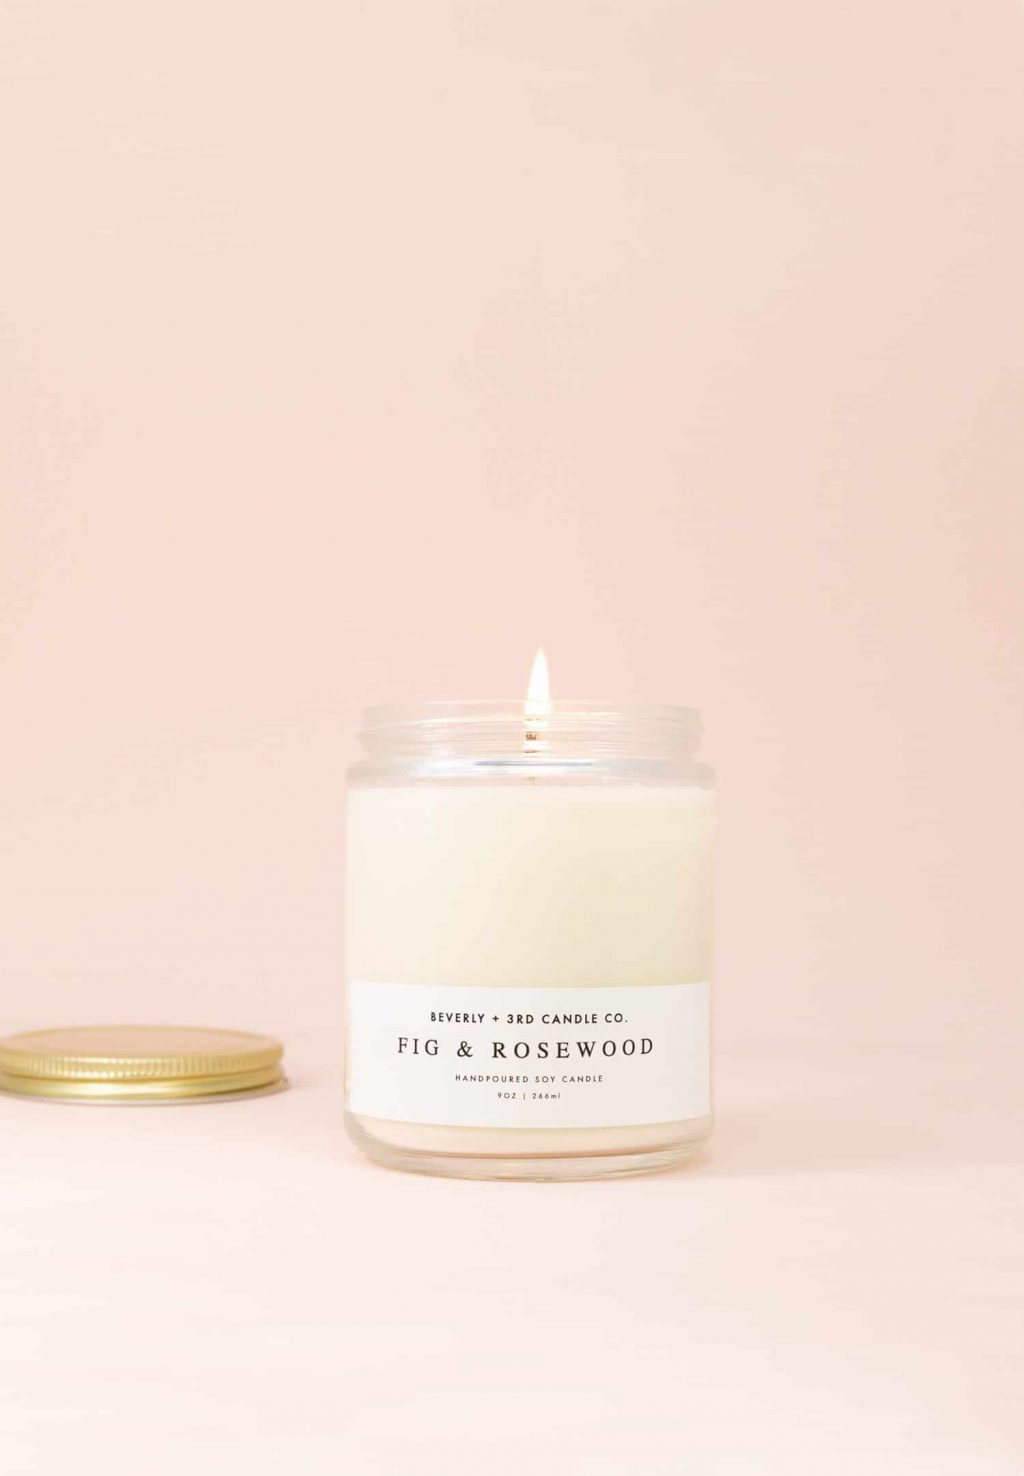 FIG & ROSEWOOD Candle, Fig Scented, Rosewood Candle, Oakmoss Candle, Soy Candle, Scented Soy Candle, Wood Wick | Wholesale, Bulk Order